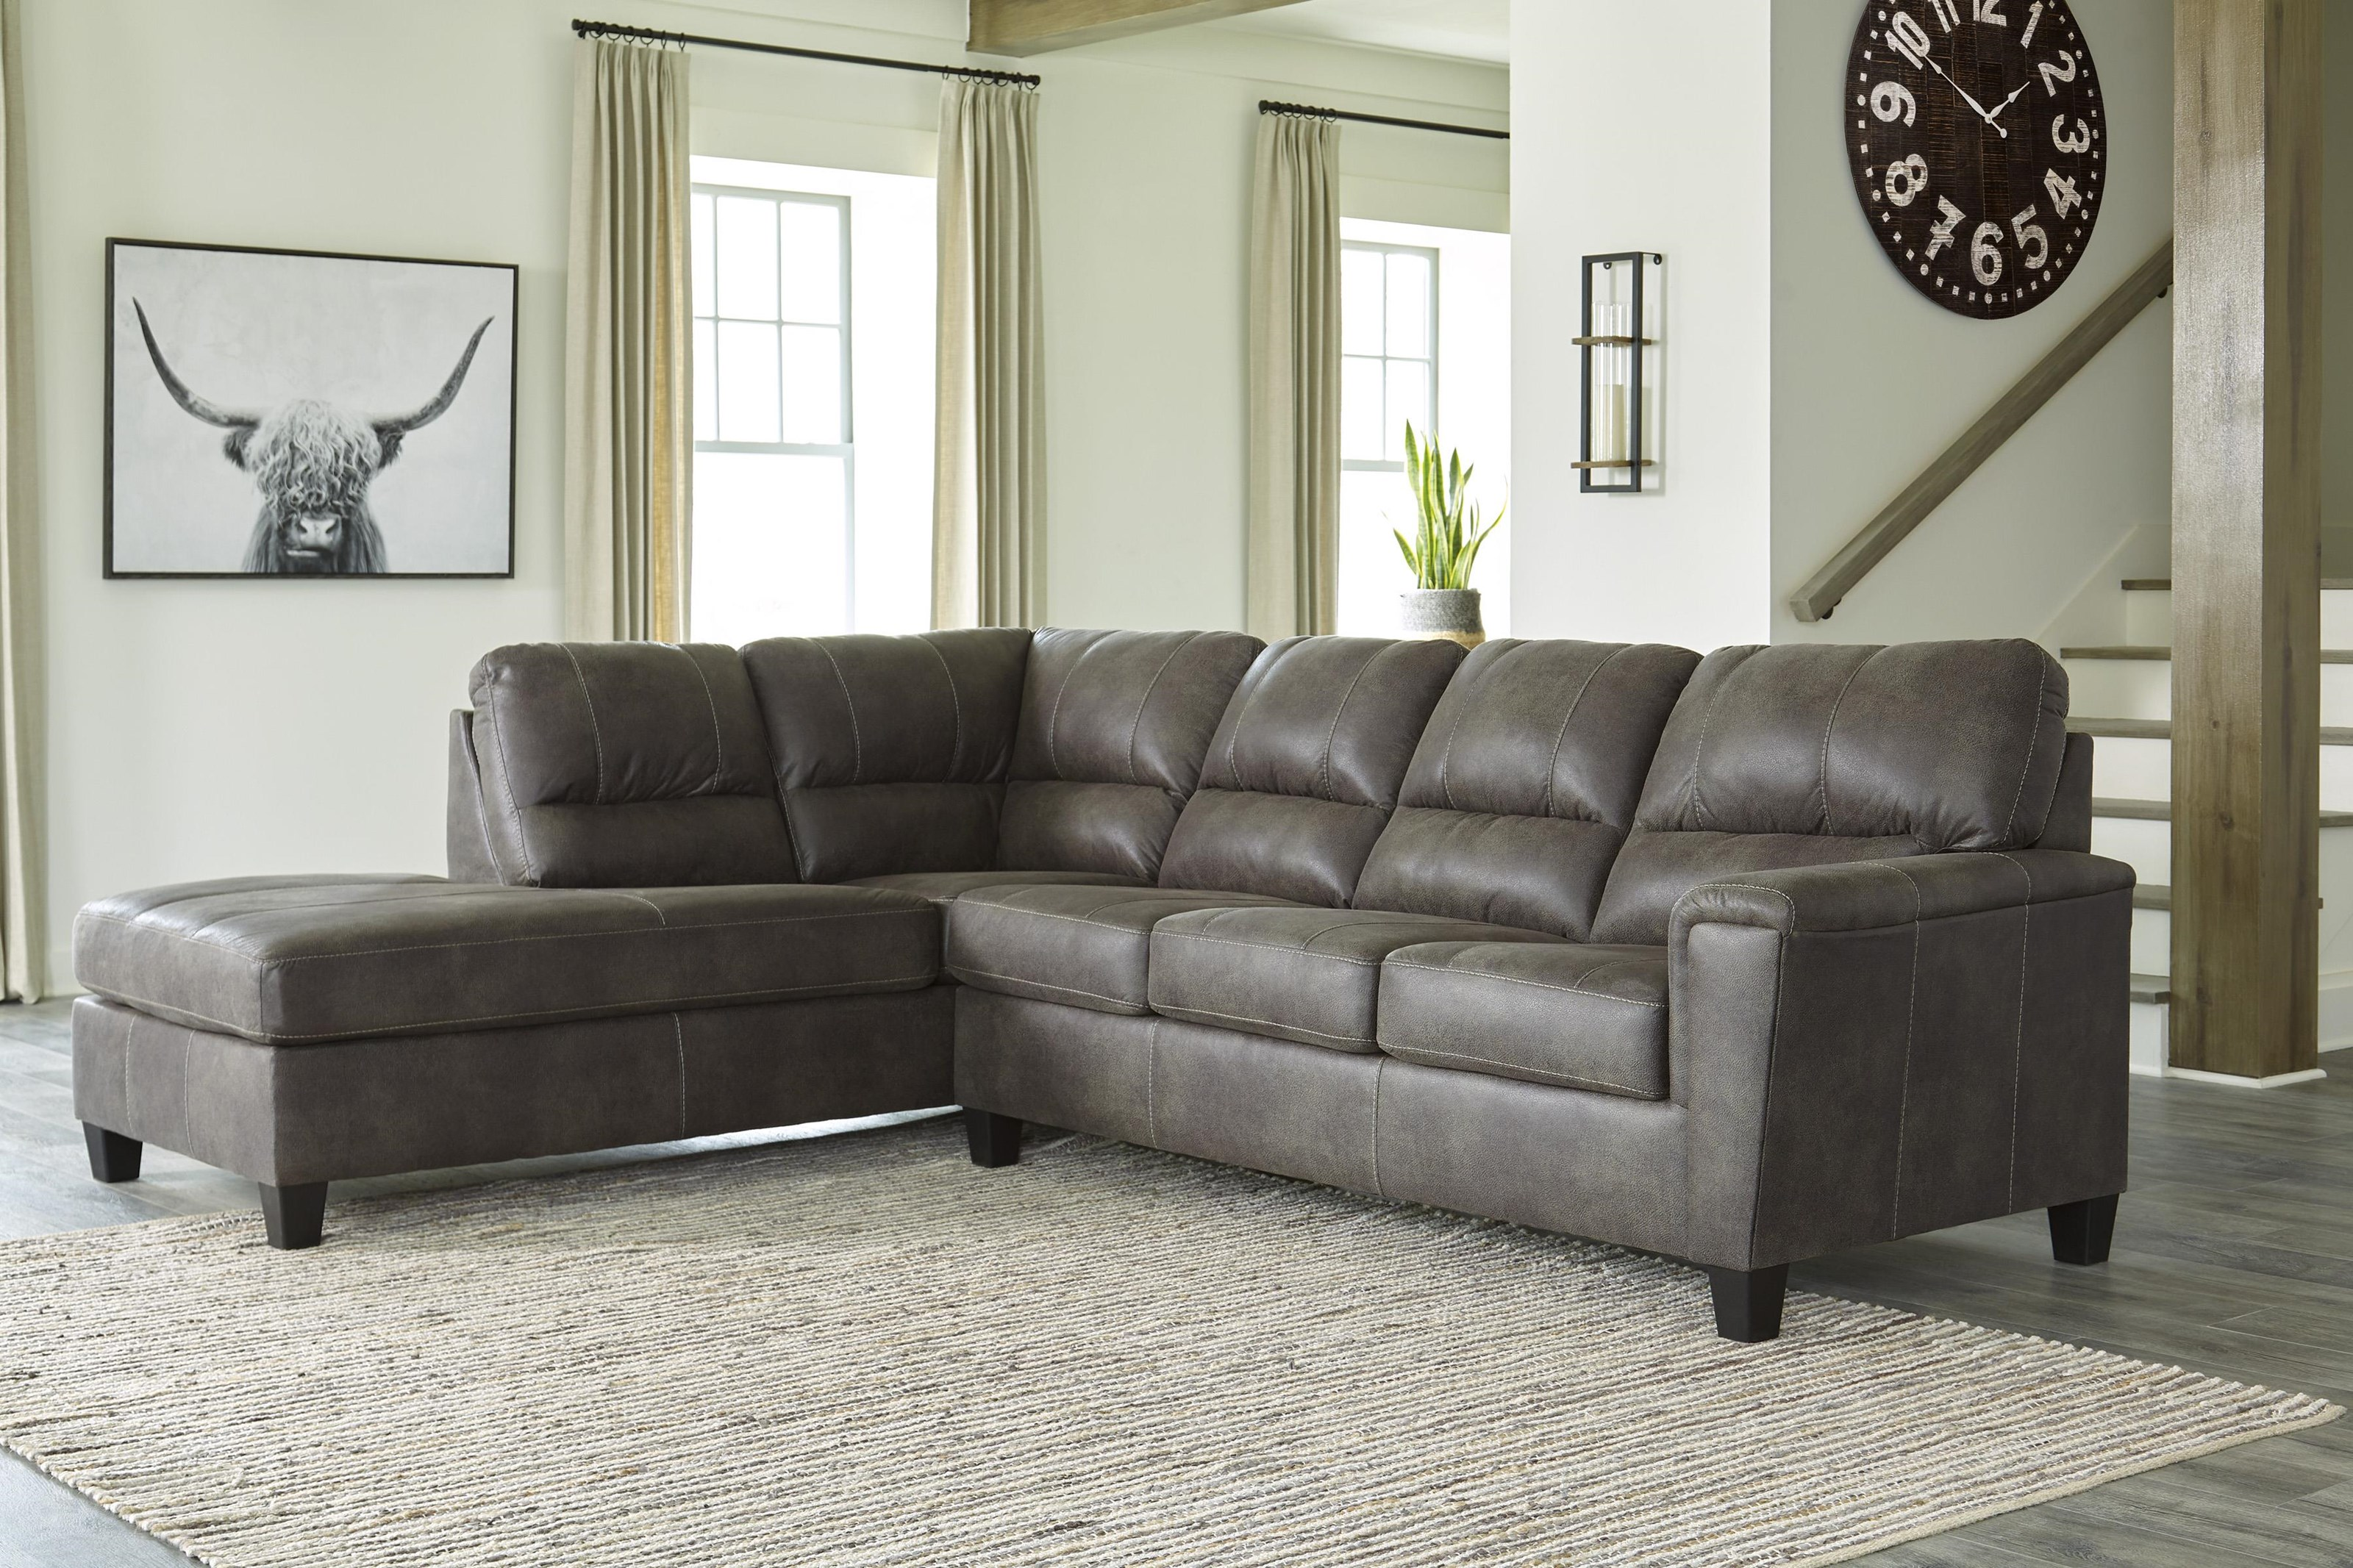 Navi 2 Piece Chaise Sectional and Recliner Set by Signature Design by Ashley at Sam Levitz Outlet